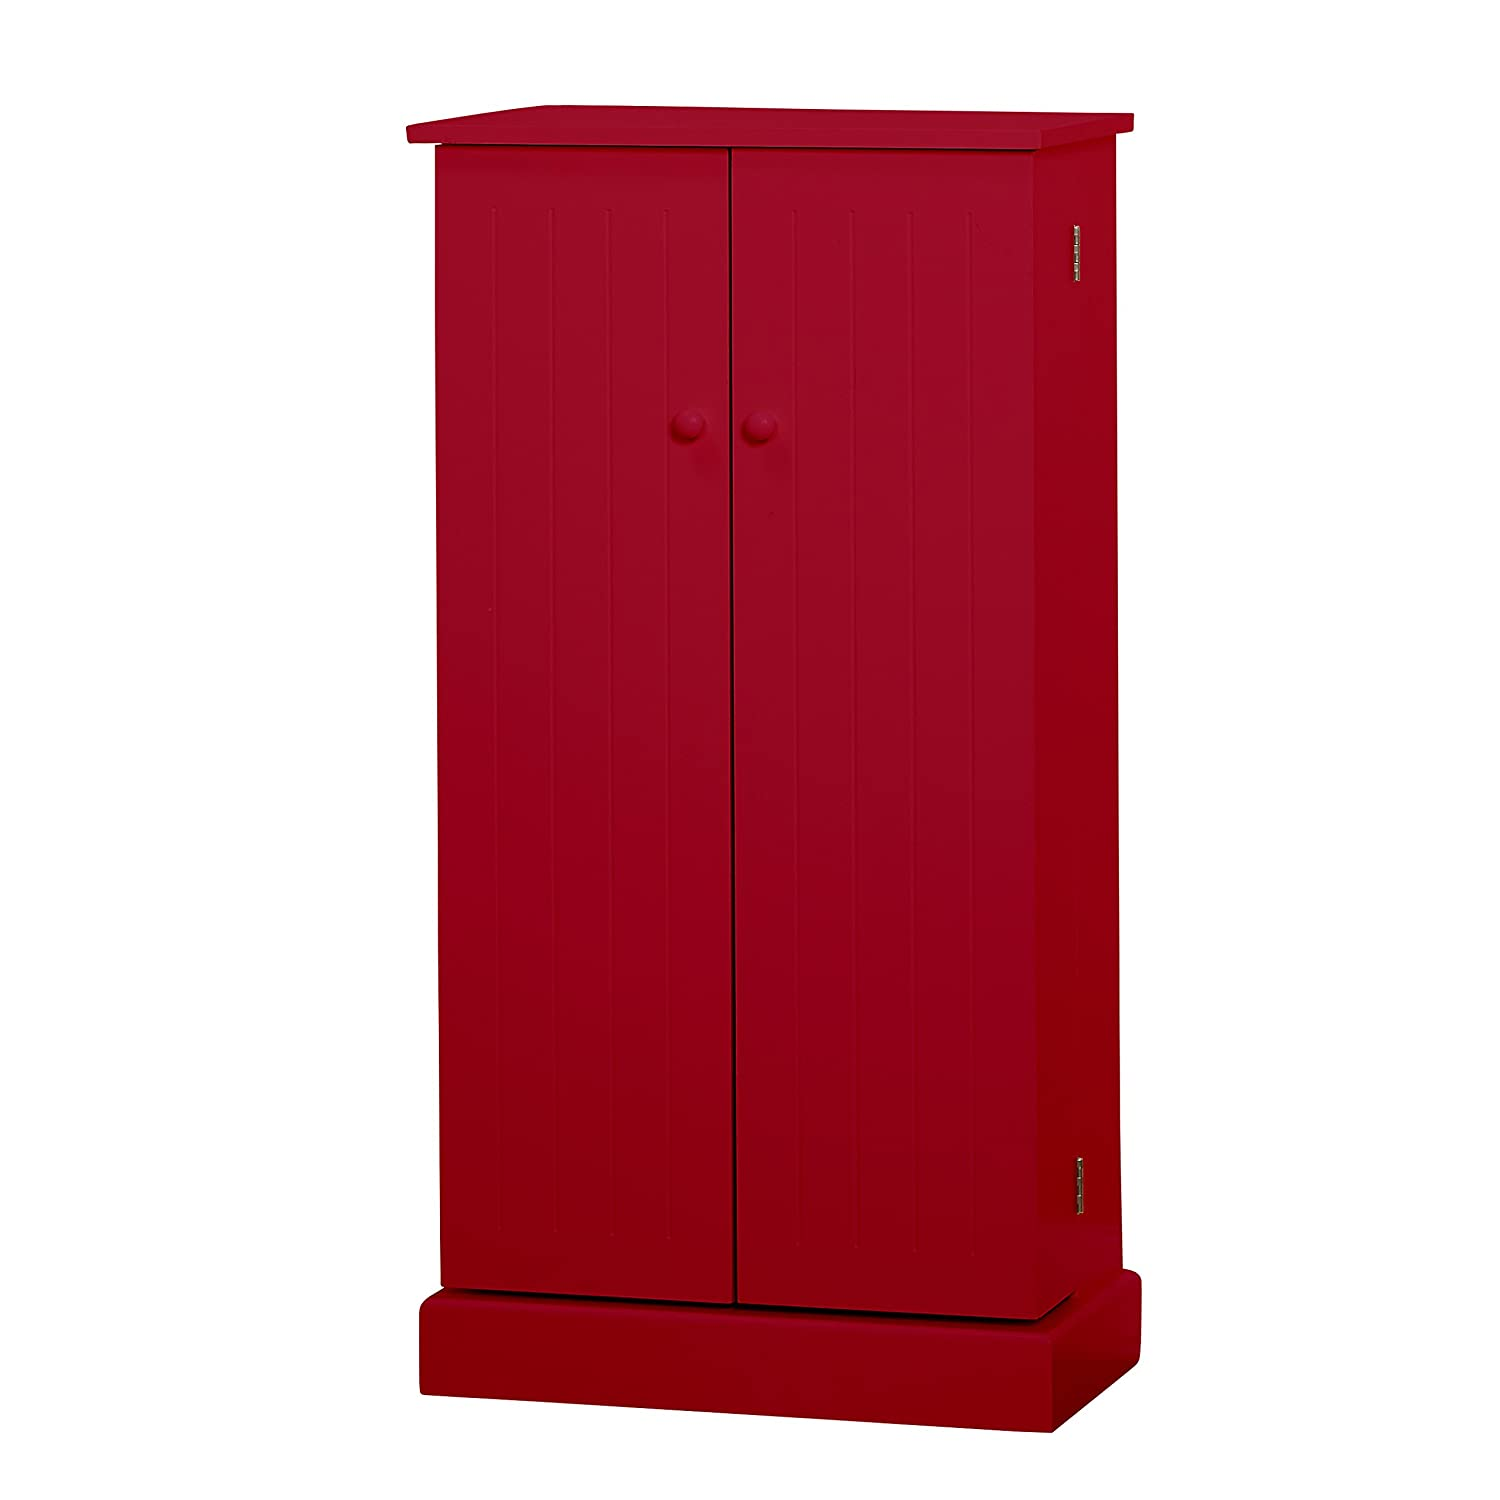 Target Marketing Systems 61885RED Utility Pantry, Red Tartet Marketing Systems